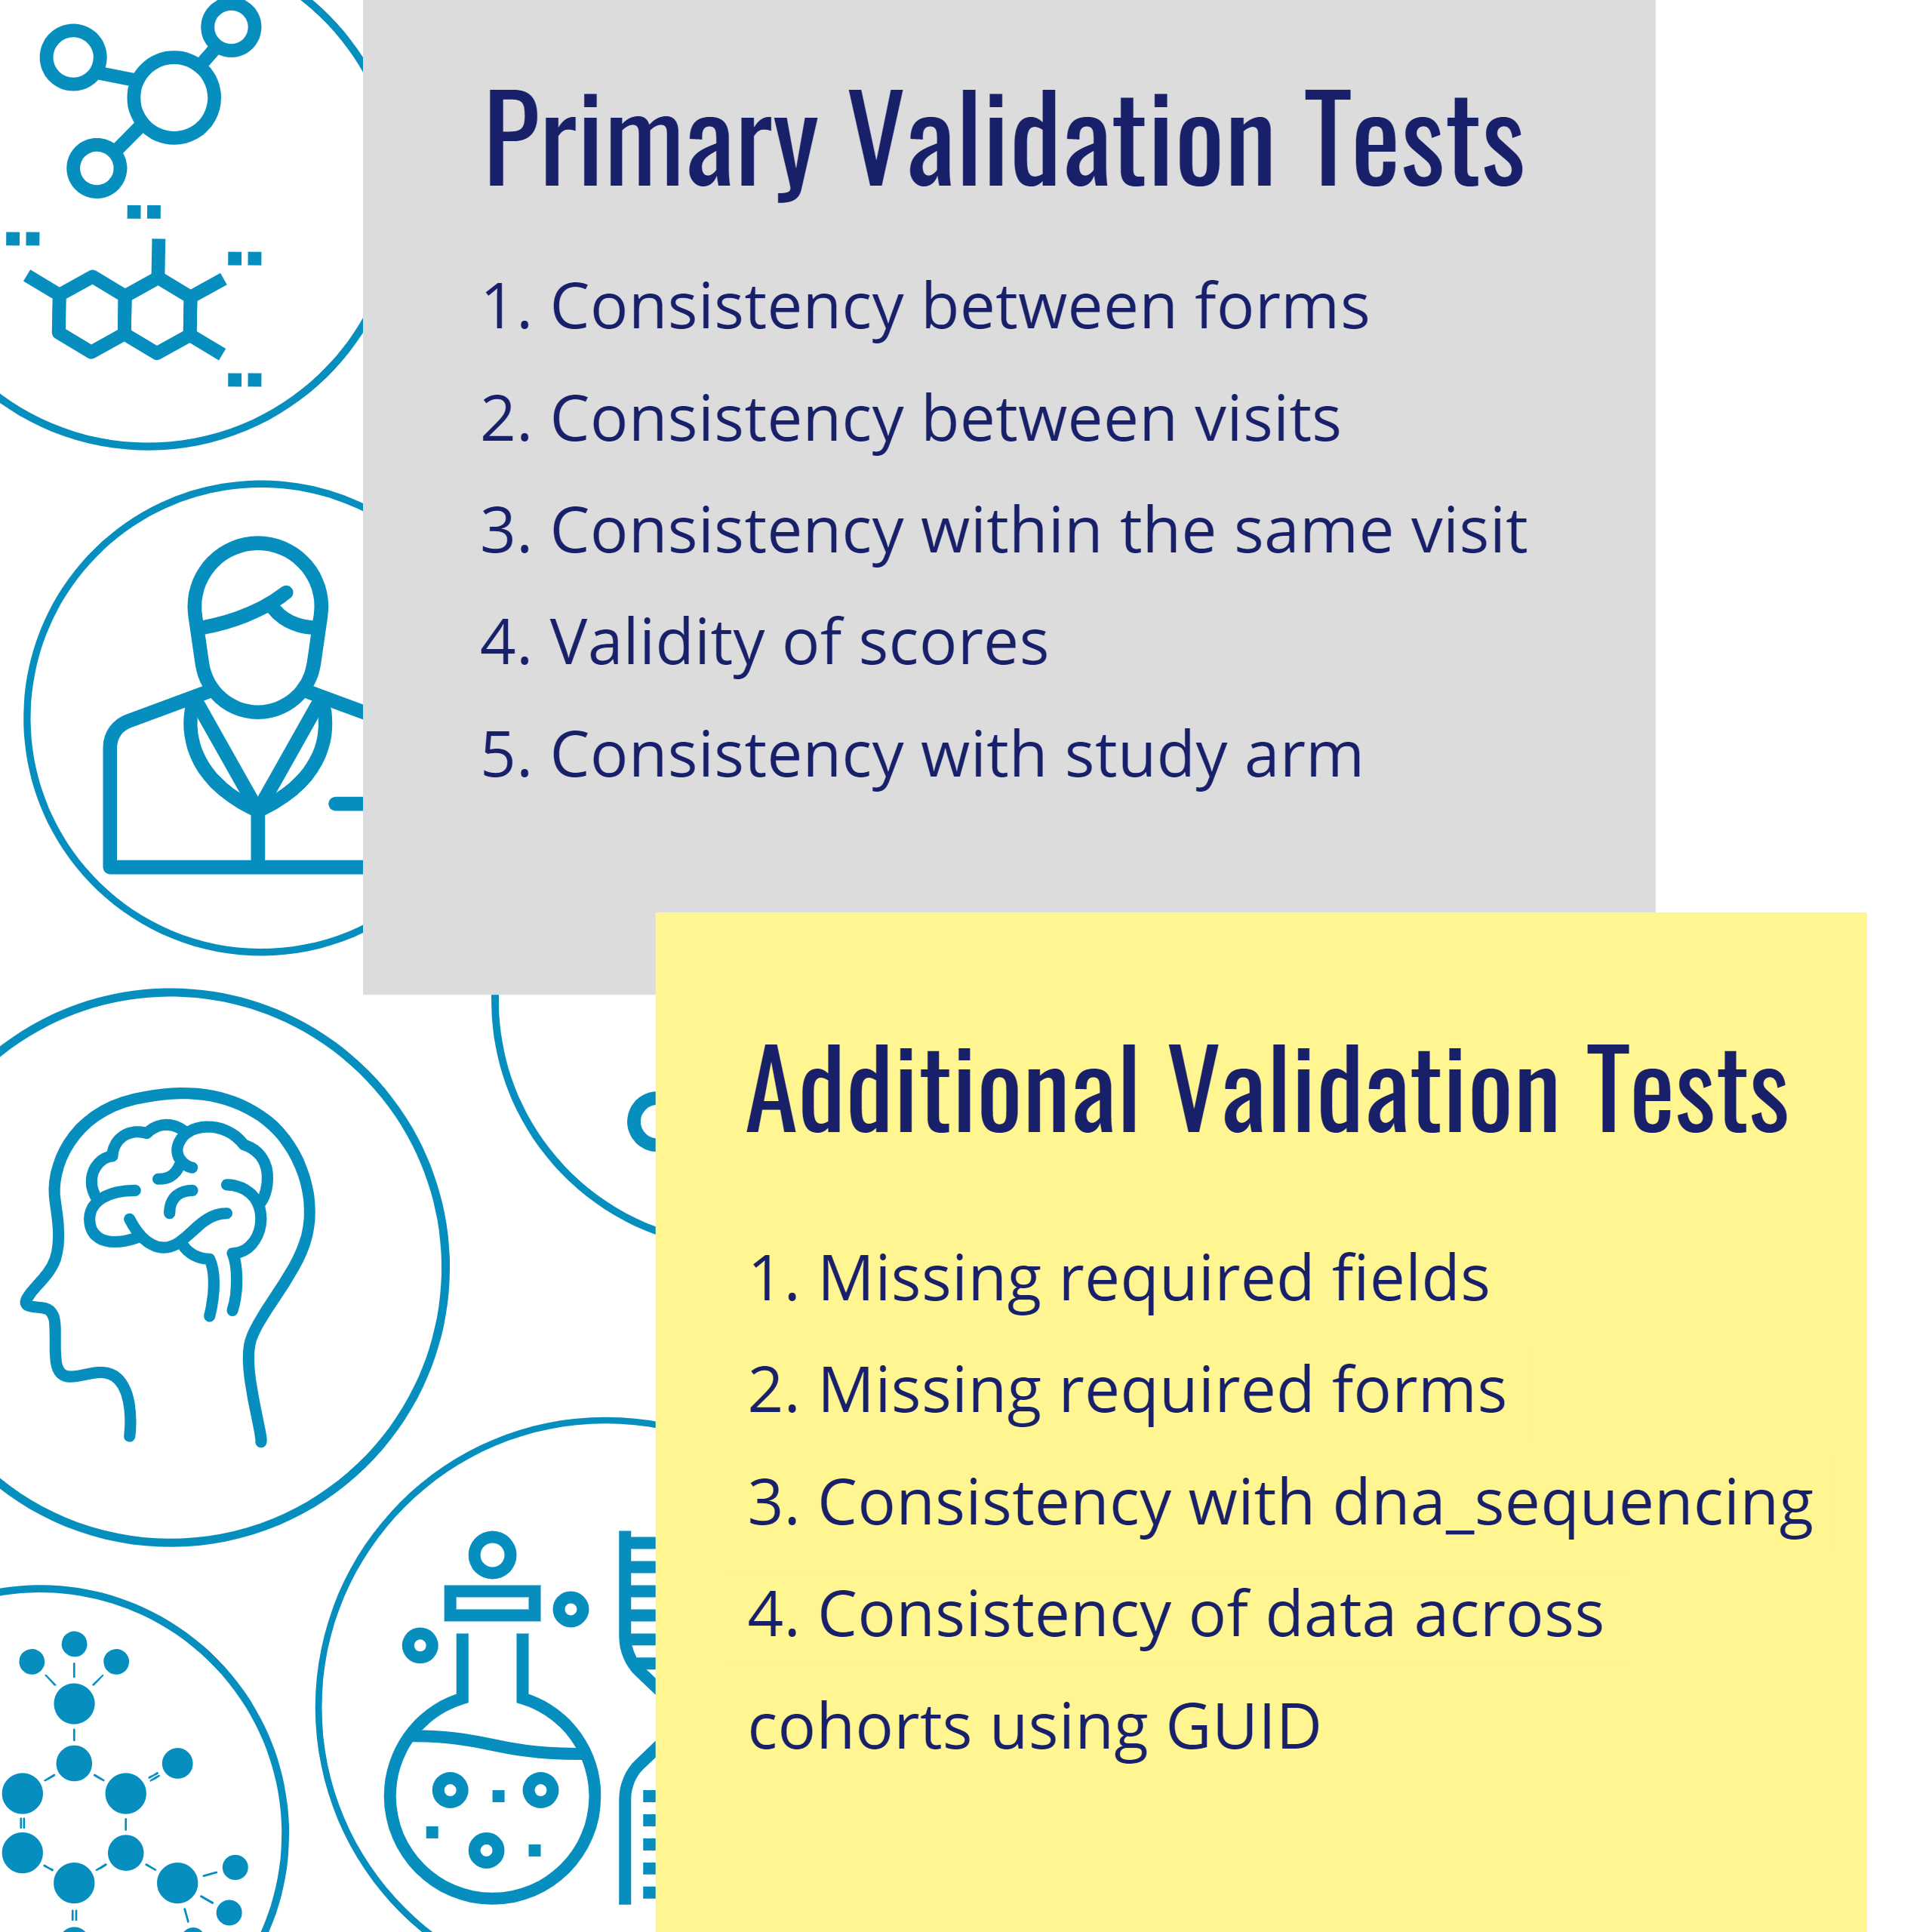 clinical data validation tests_primary and secondary